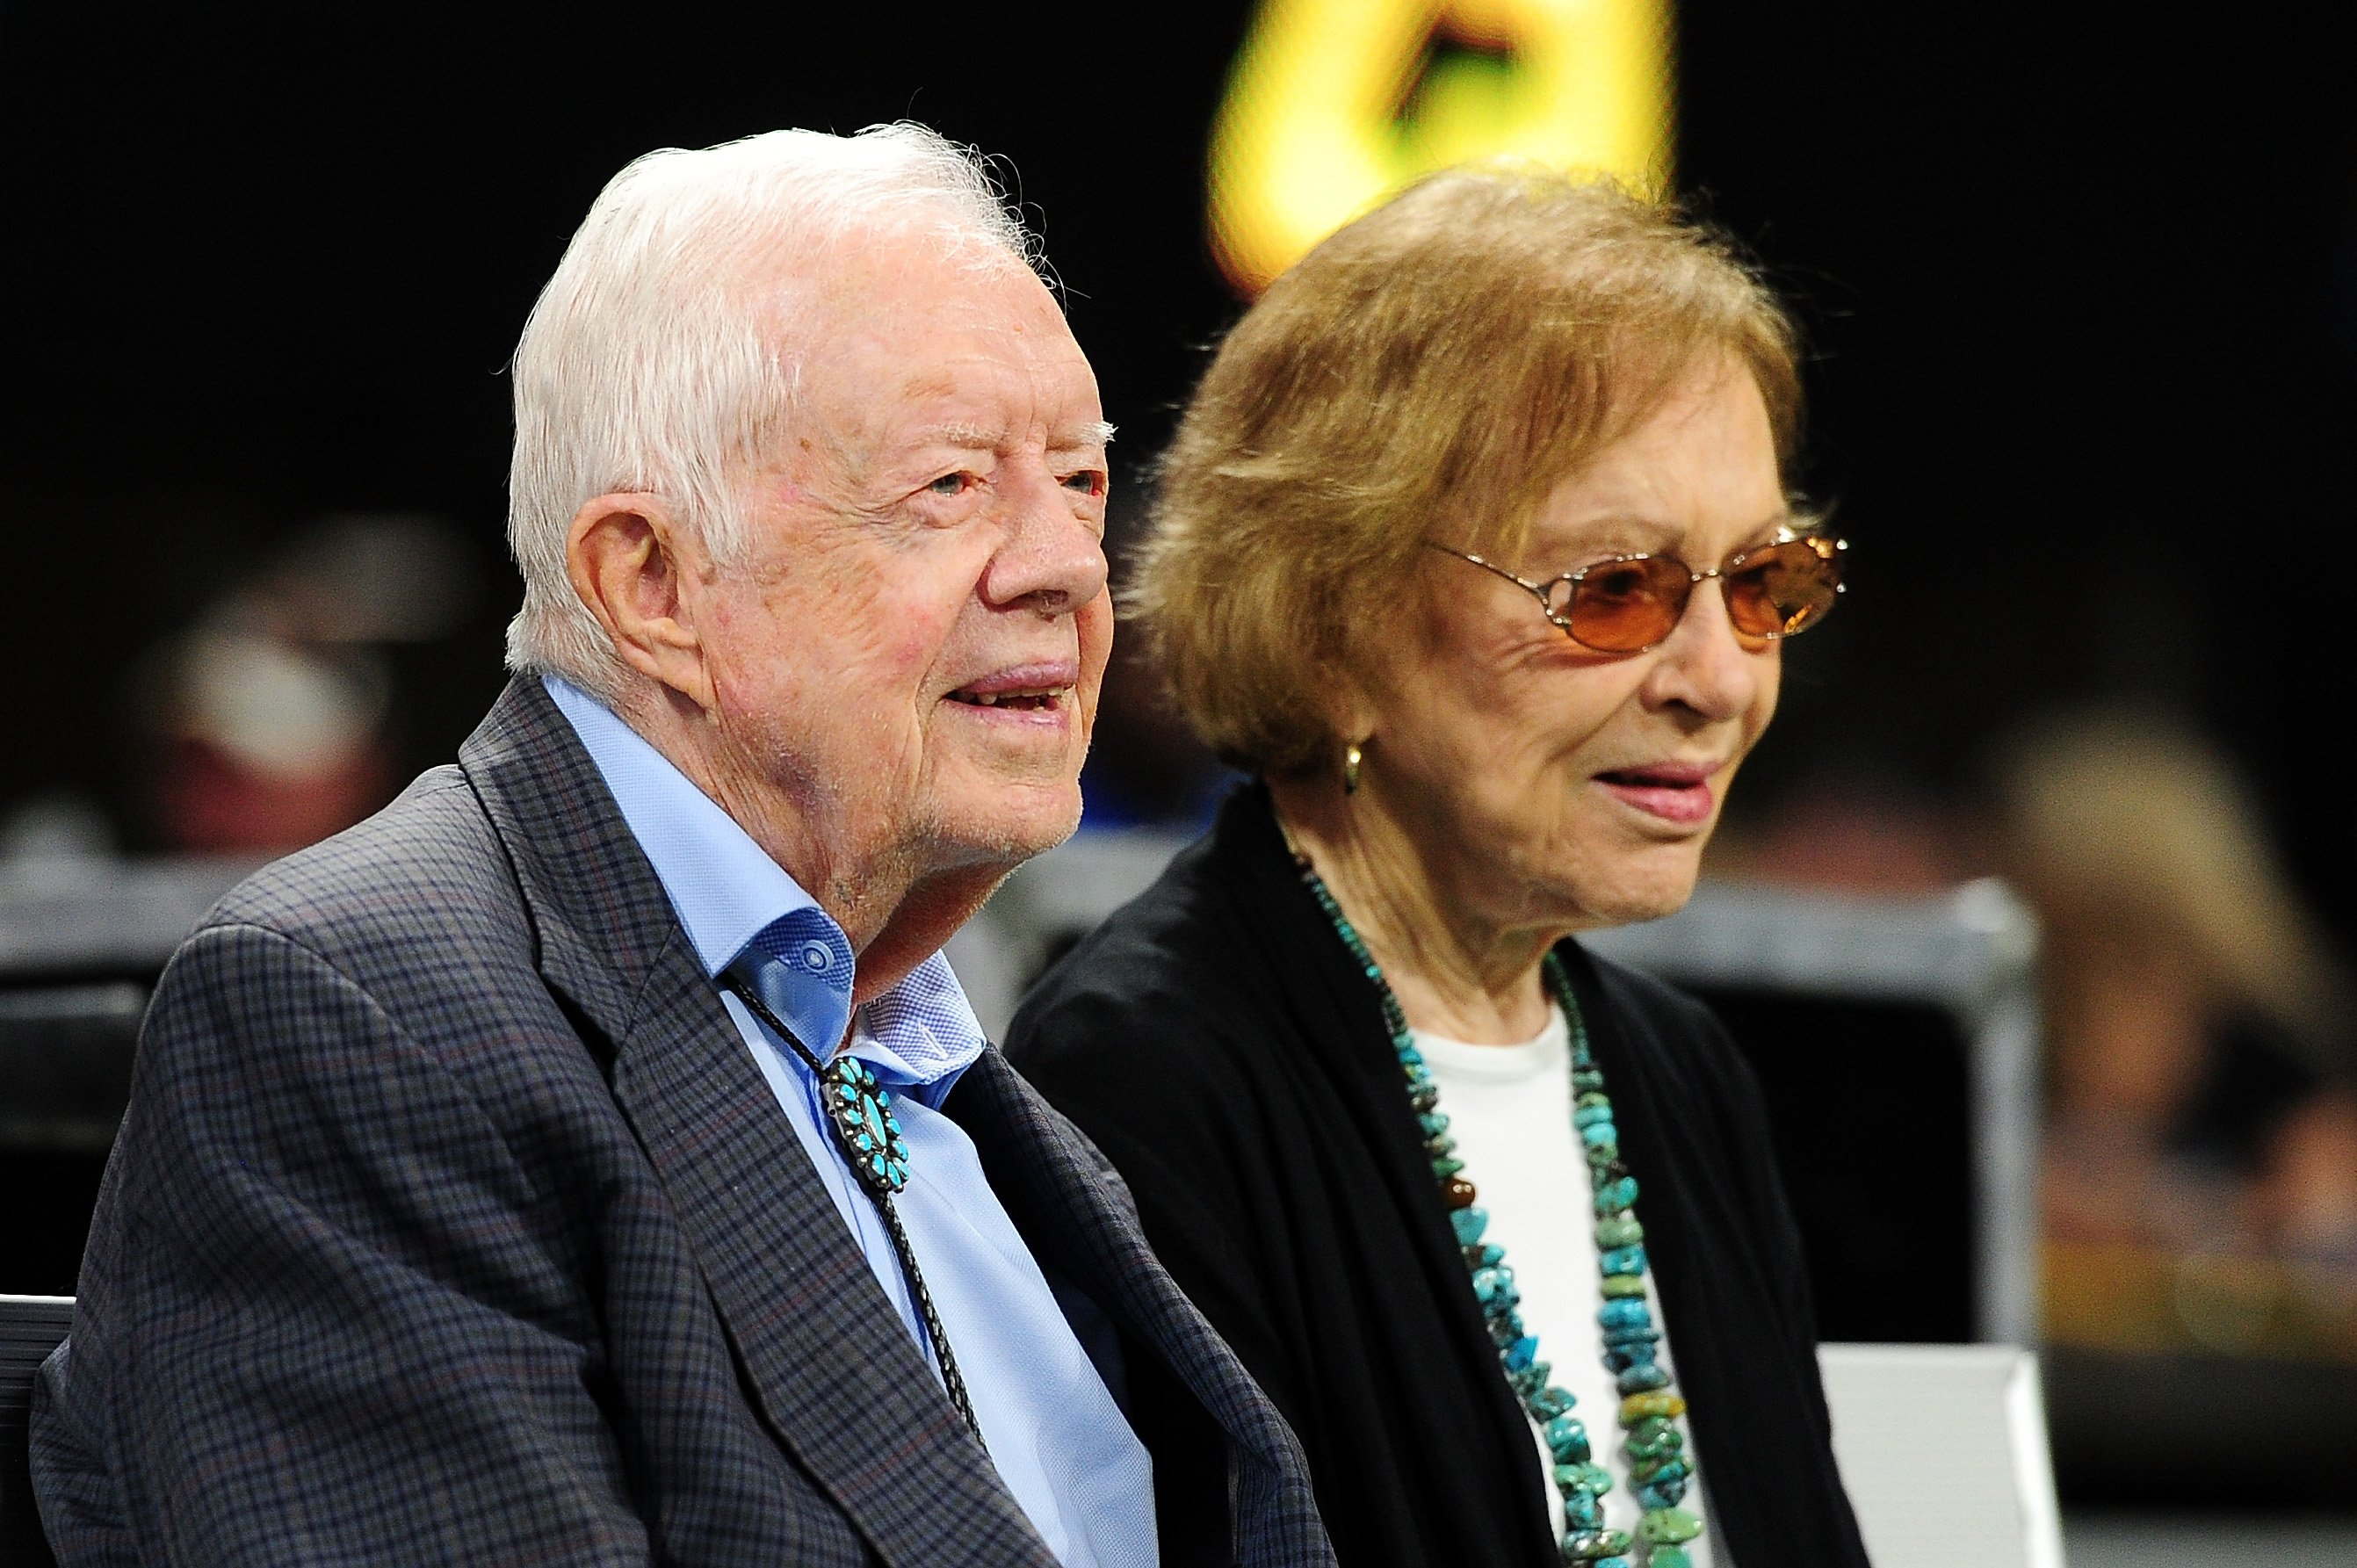 Former president Jimmy Carter and his wife Rosalynn prior to the game between the Atlanta Falcons and the Cincinnati Bengals at Mercedes-Benz Stadium on September 30, 2018 in Atlanta, Georgia.   Getty Images